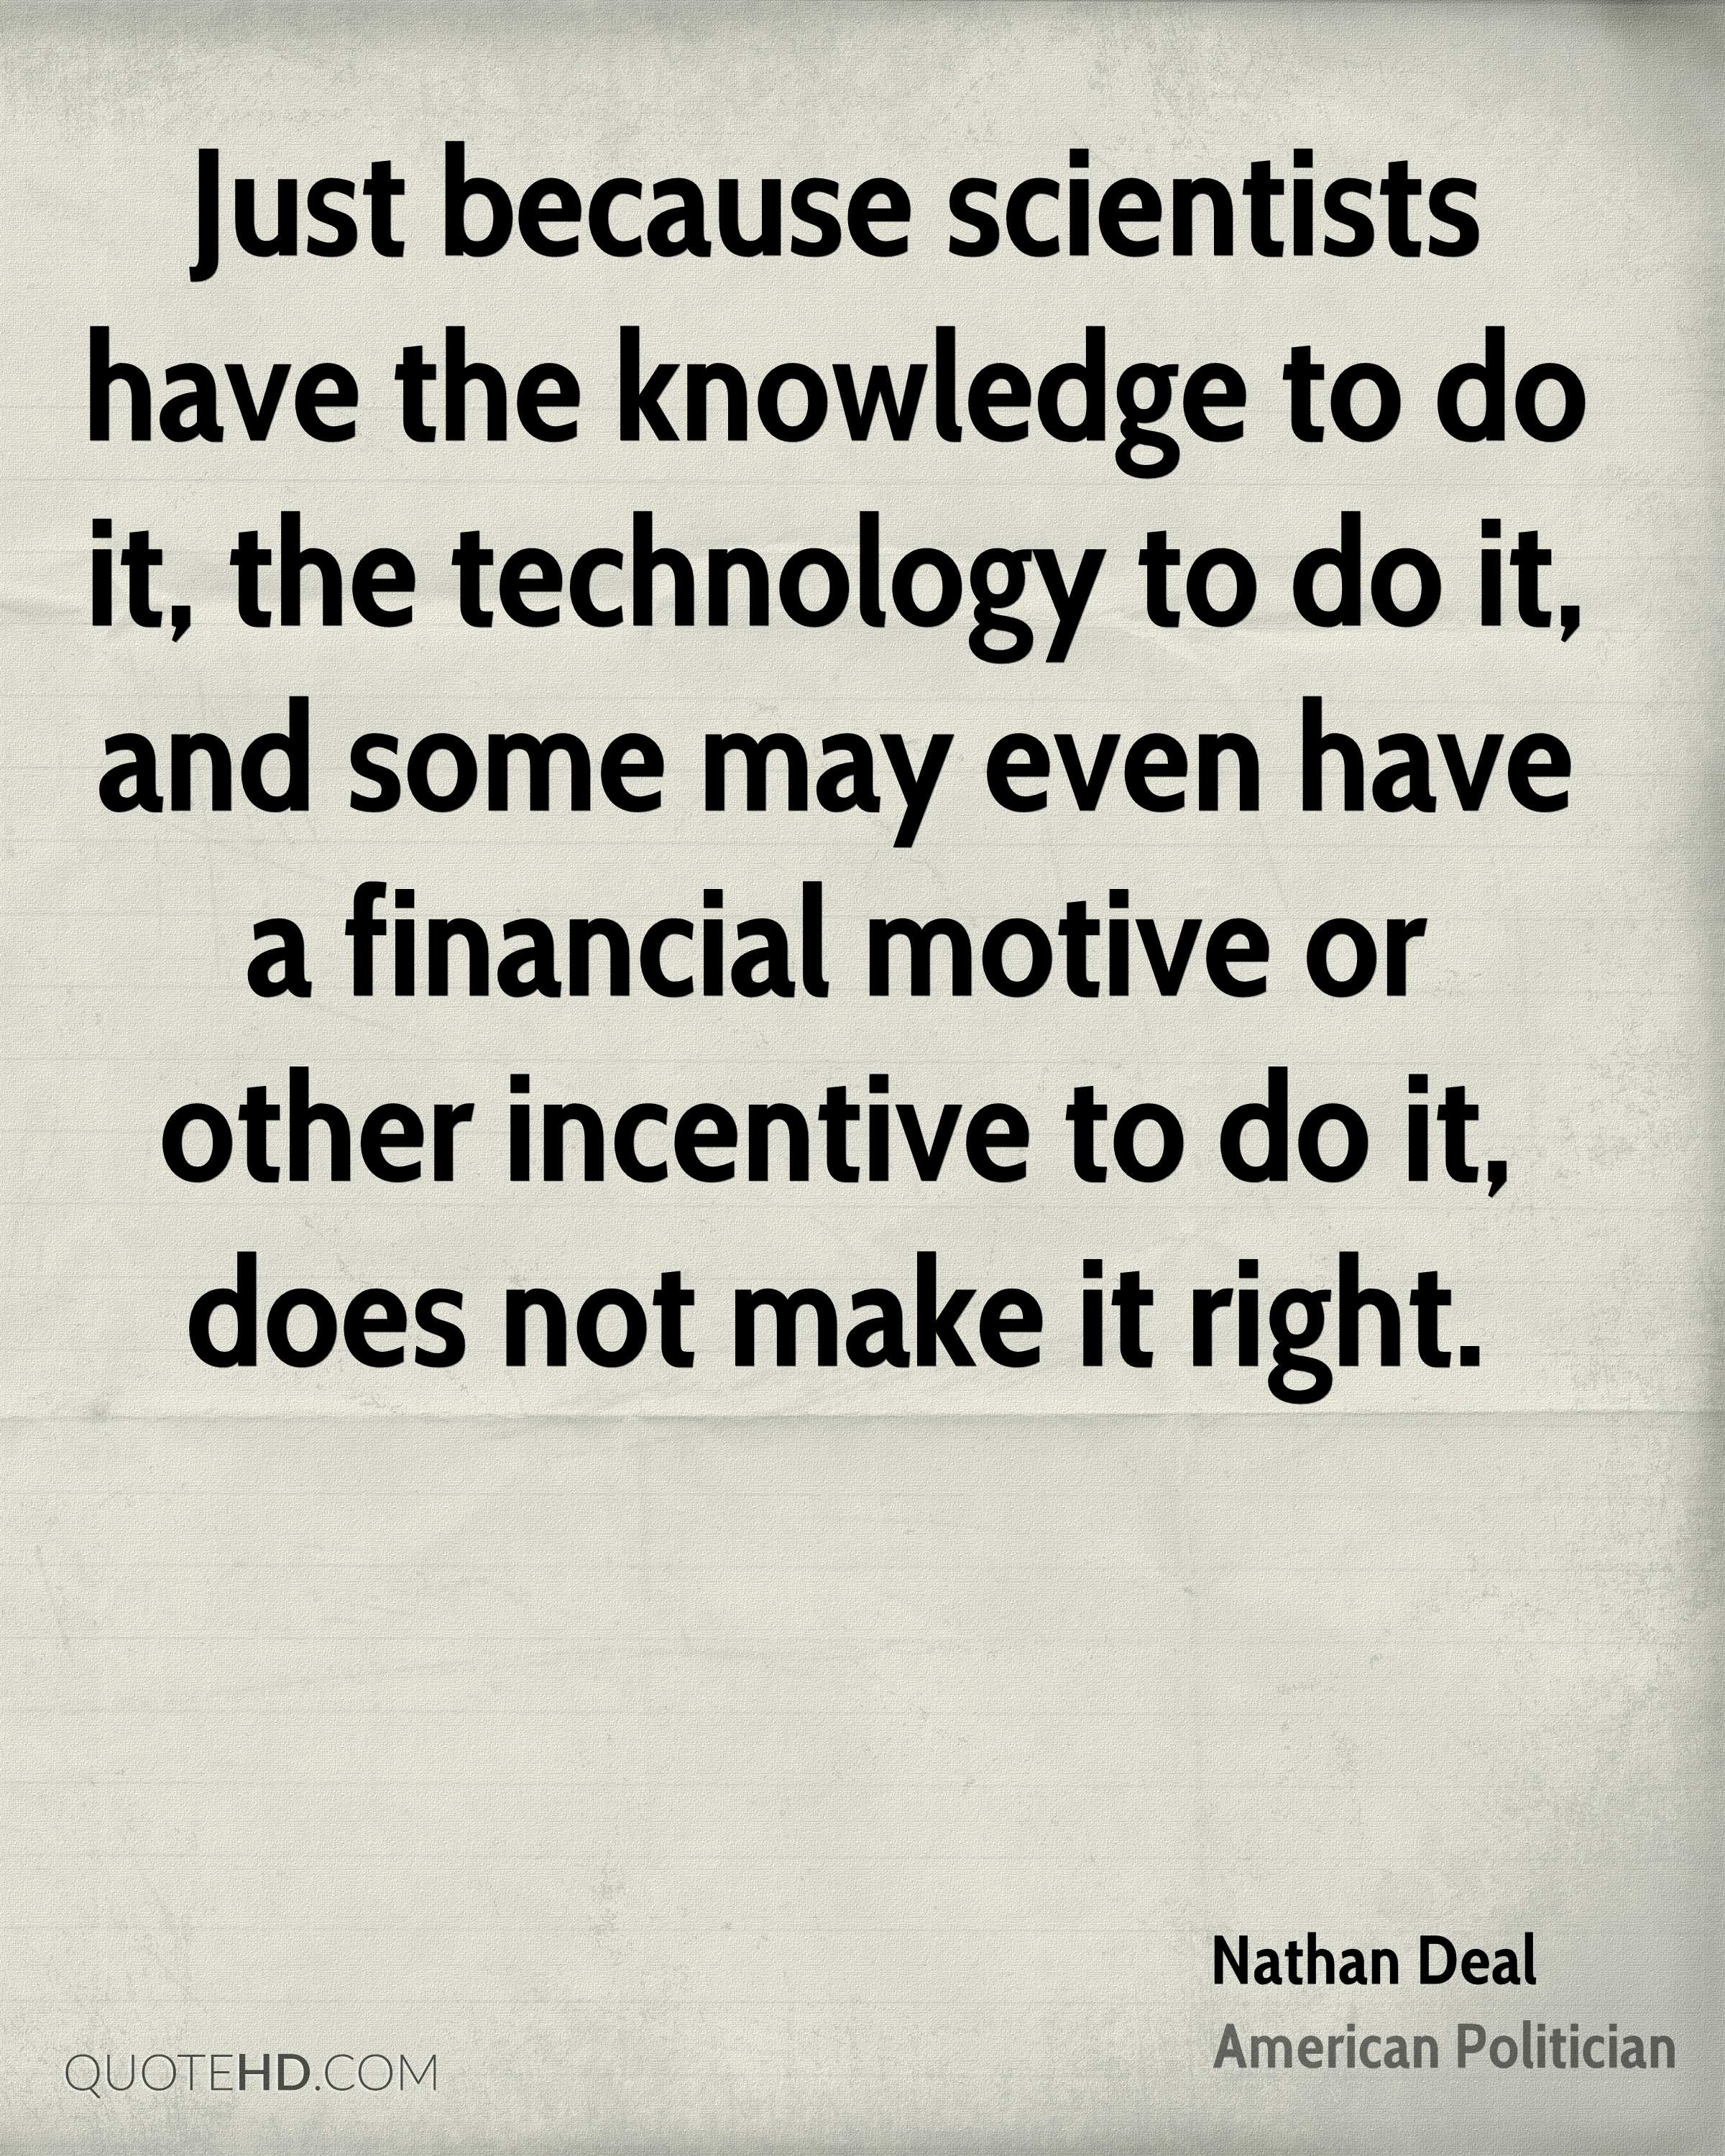 Just because scientists have the knowledge to do it, the technology to do it, and some may even have a financial motive or other incentive to do it, does not make it right.